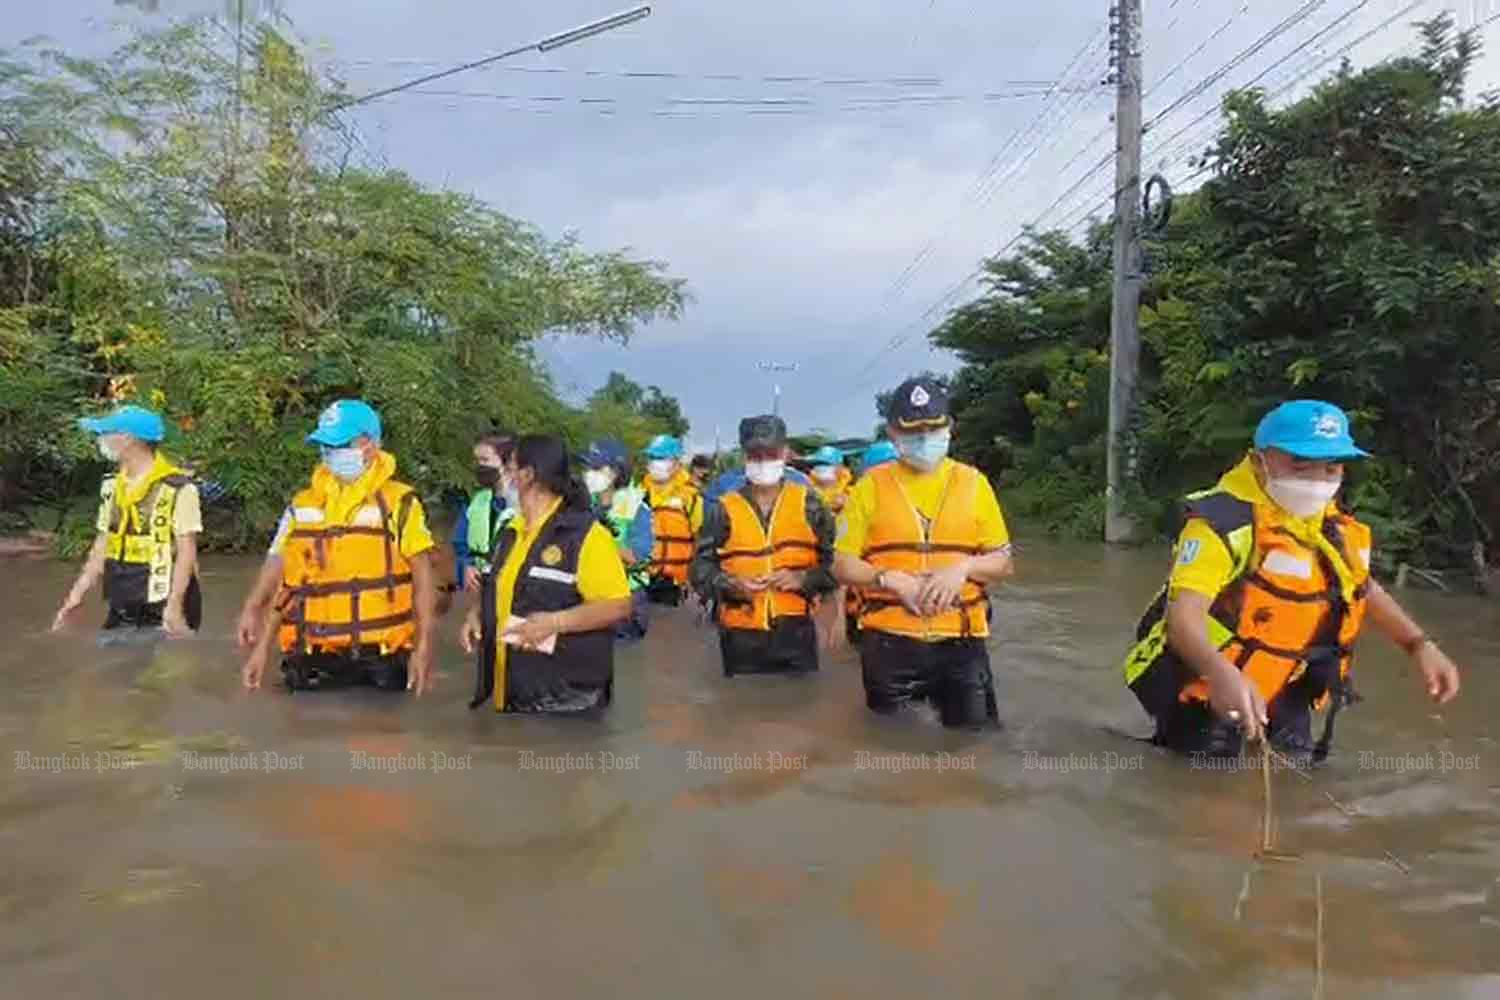 Flooding in 30 provinces leaves 6 dead